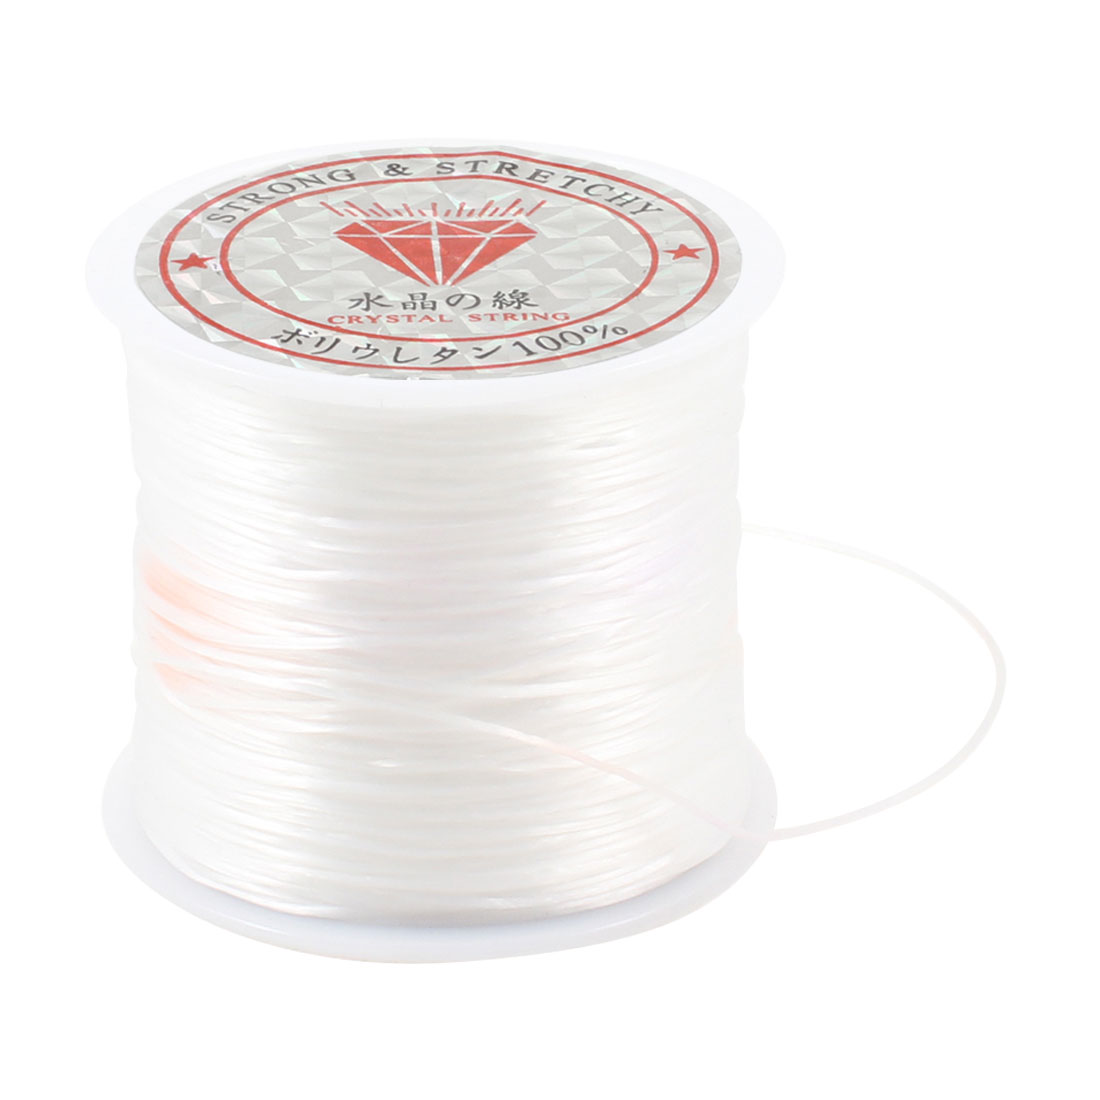 White Elastic Stretchy Crystal String Cord Jewelry Beading Thread Spool 10 Meter